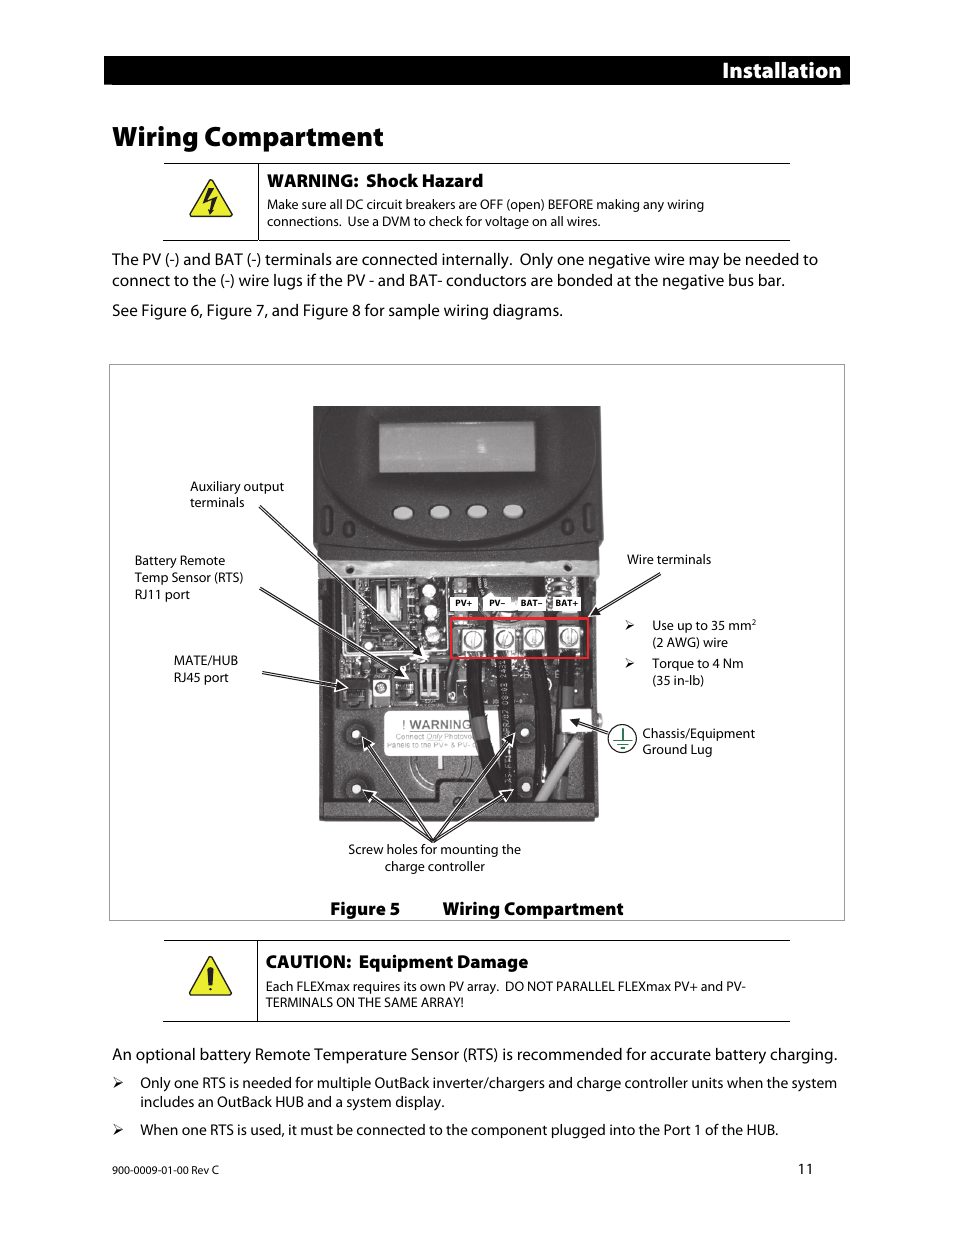 Wiring compartment, Installation, Warning: shock hazard | Outback Power  Systems FLEXmax 80 Owners Manual User Manual | Page 13 / 112